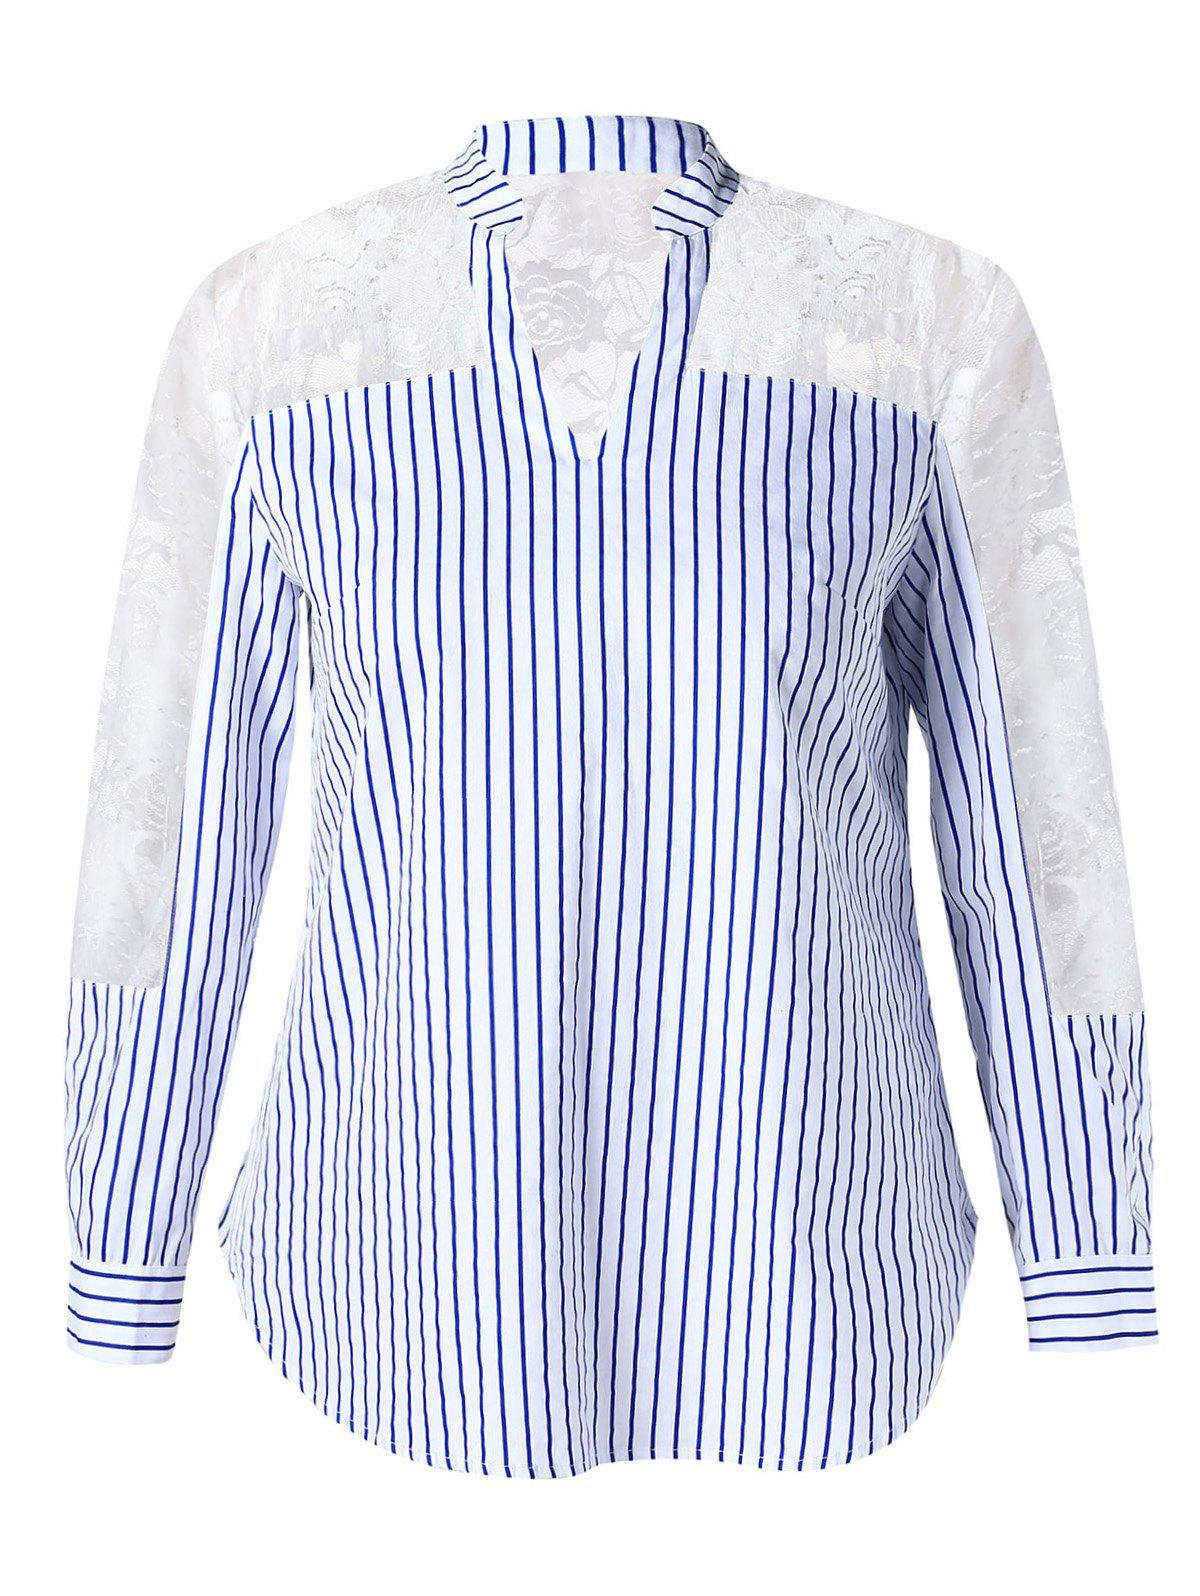 Store Sheer Lace Inset Striped Plus Size Shirt